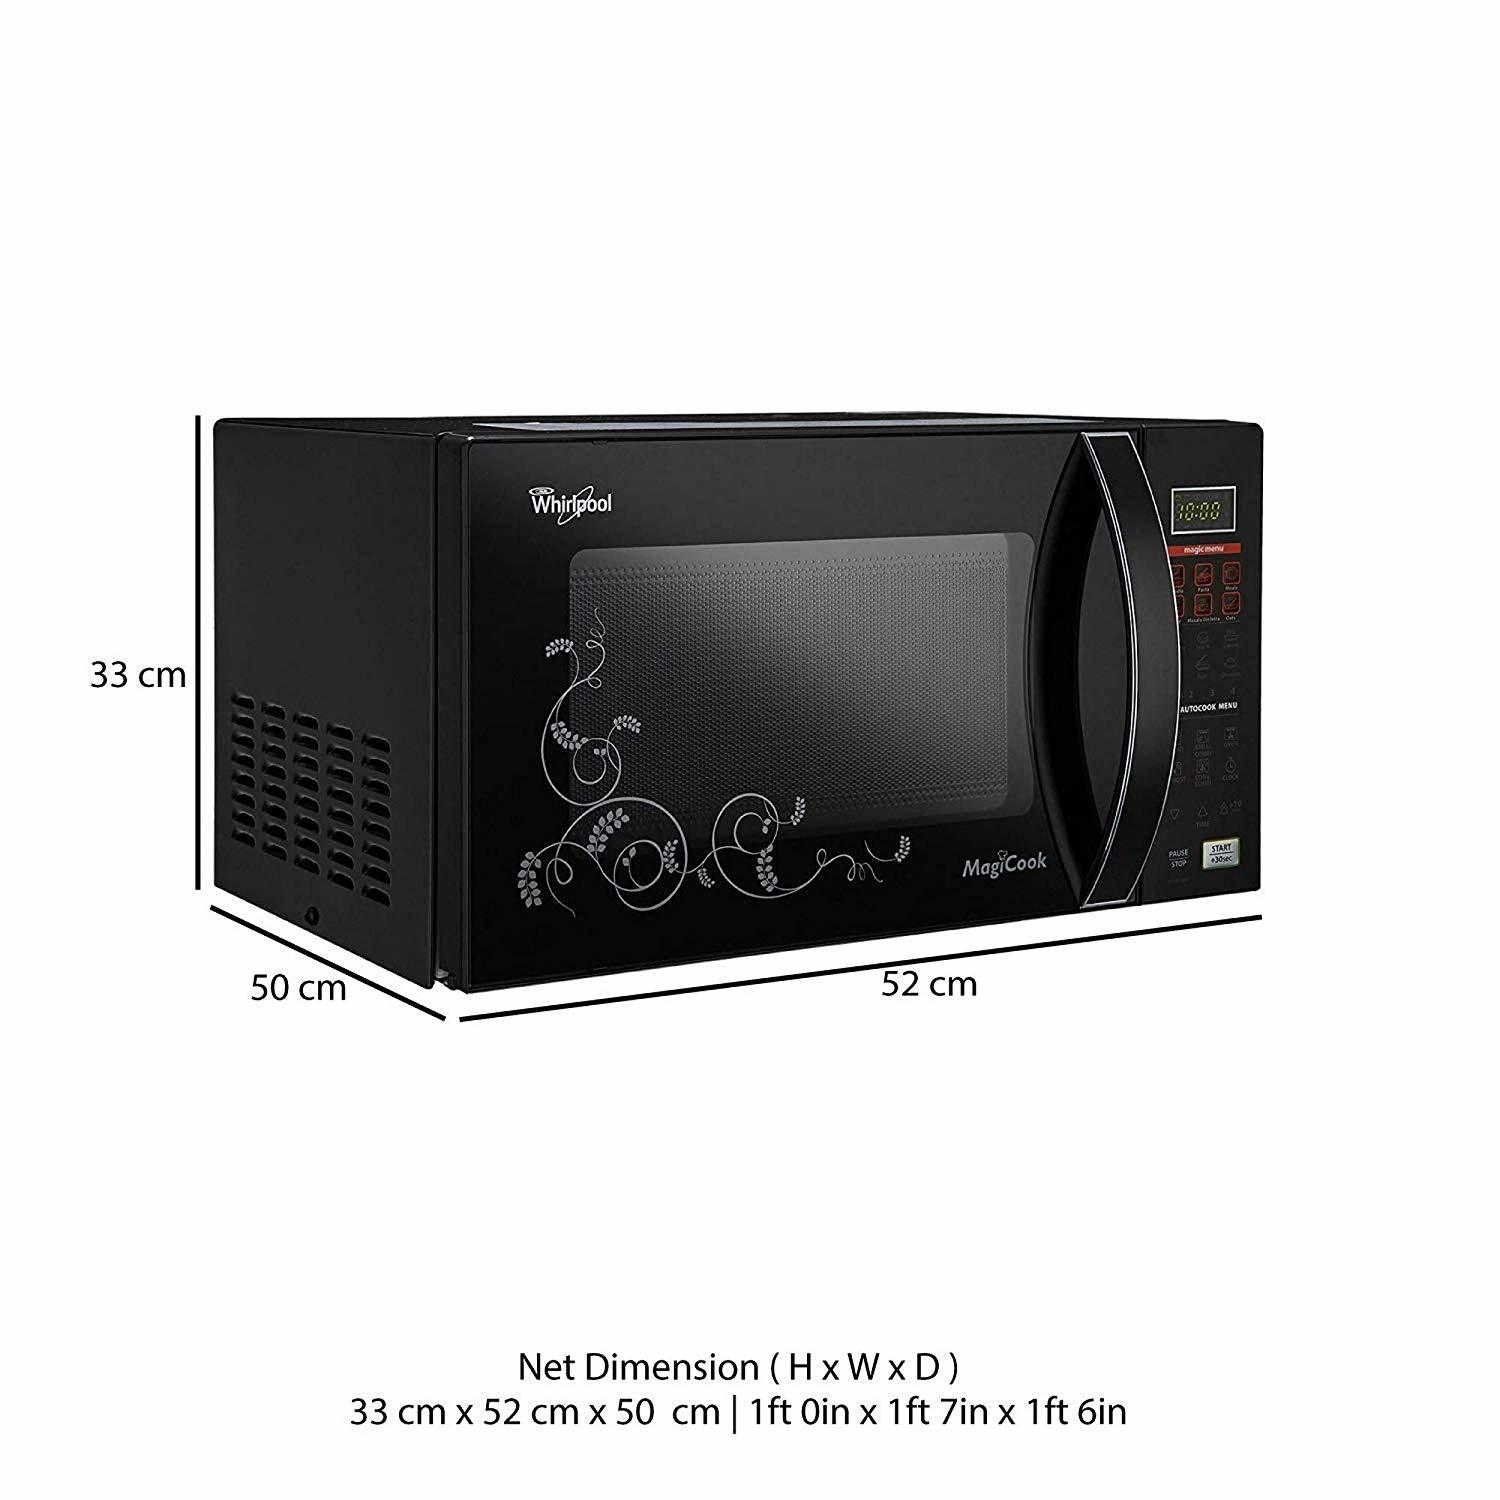 Whirlpool 20 L Convection Microwave Oven (MAGICOOK 20L ELITE-BLACK(NEW))